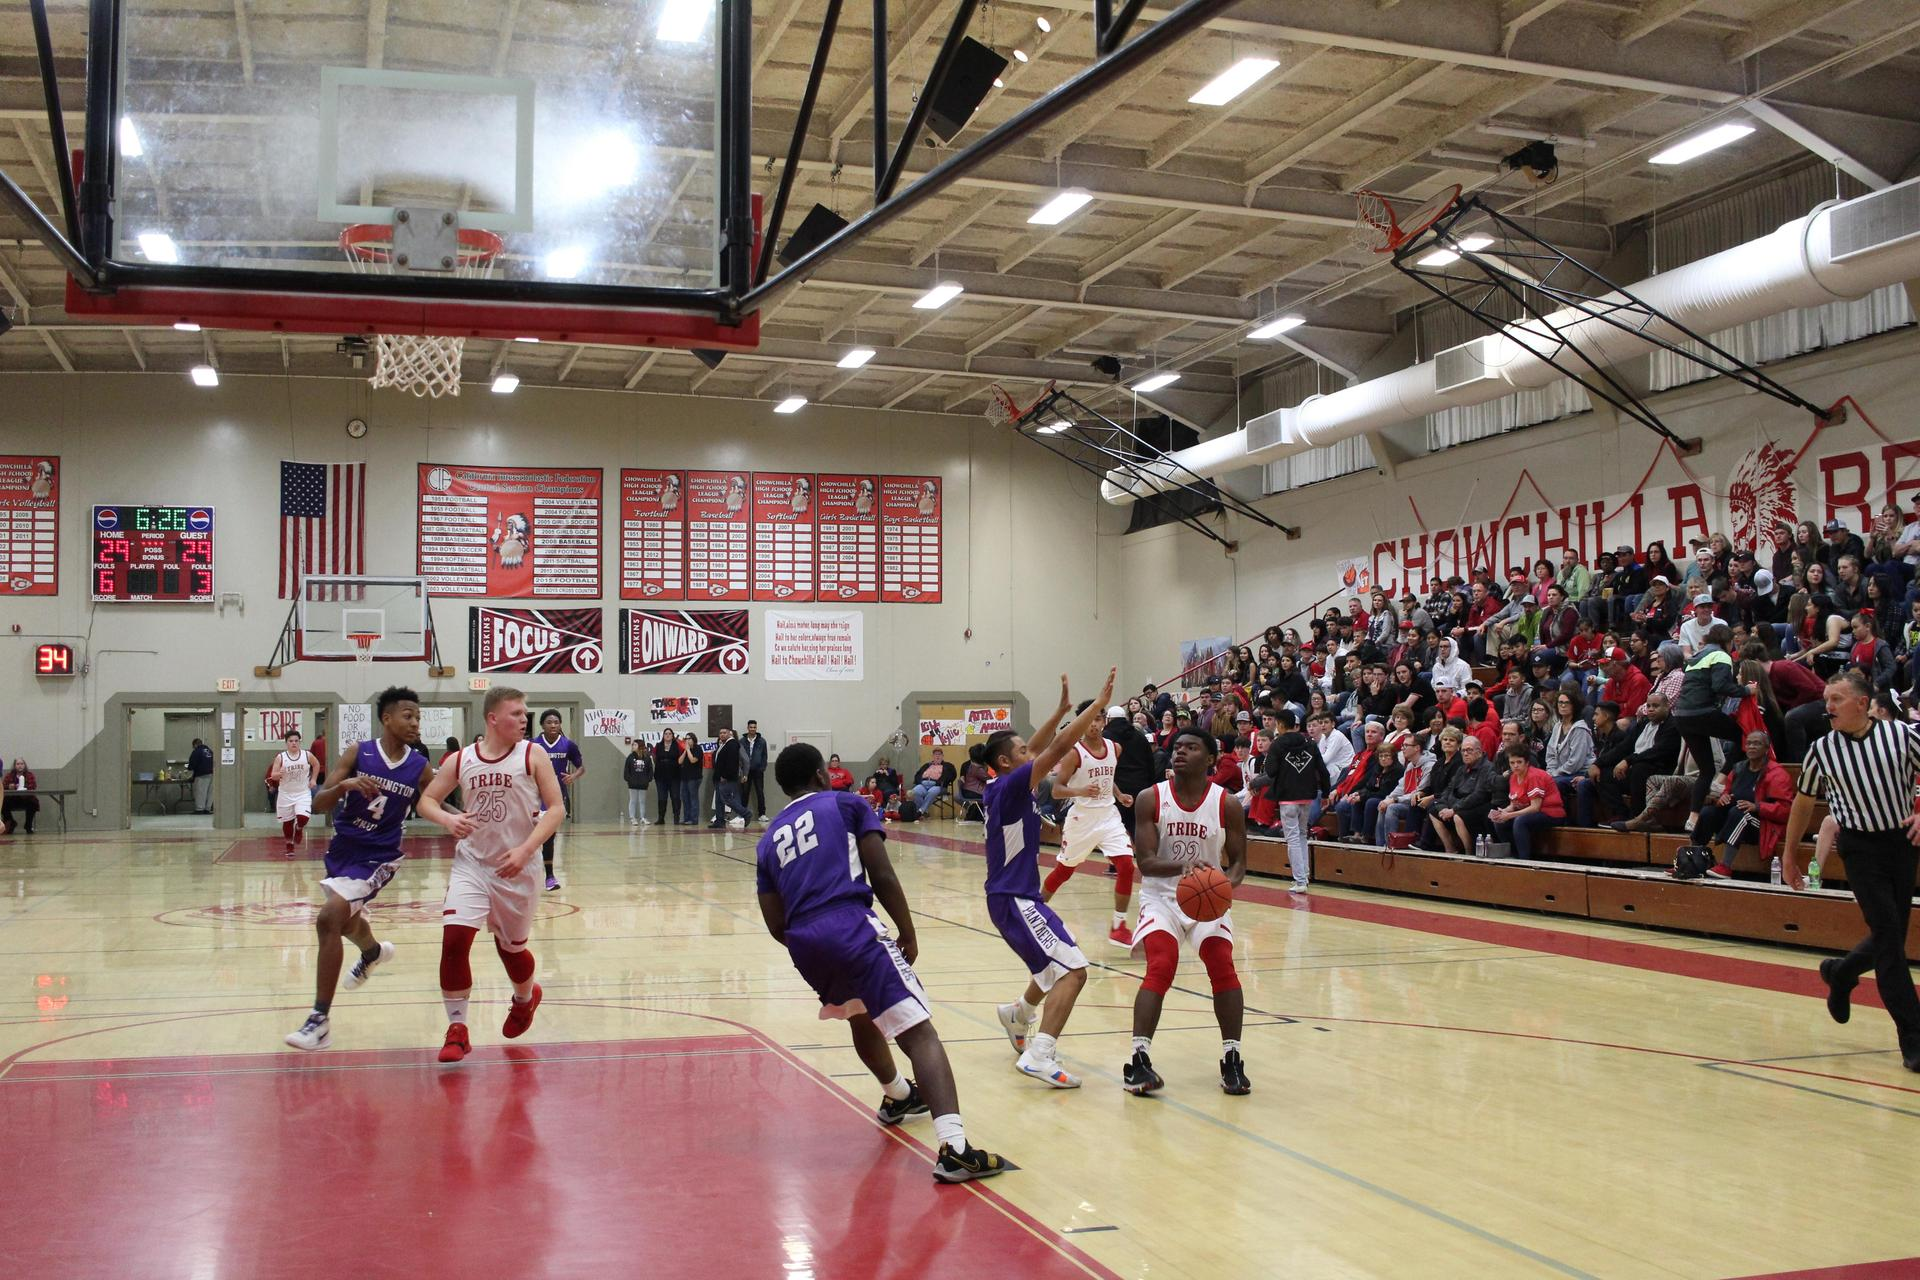 Athletes at Basket Ball Game vs Union